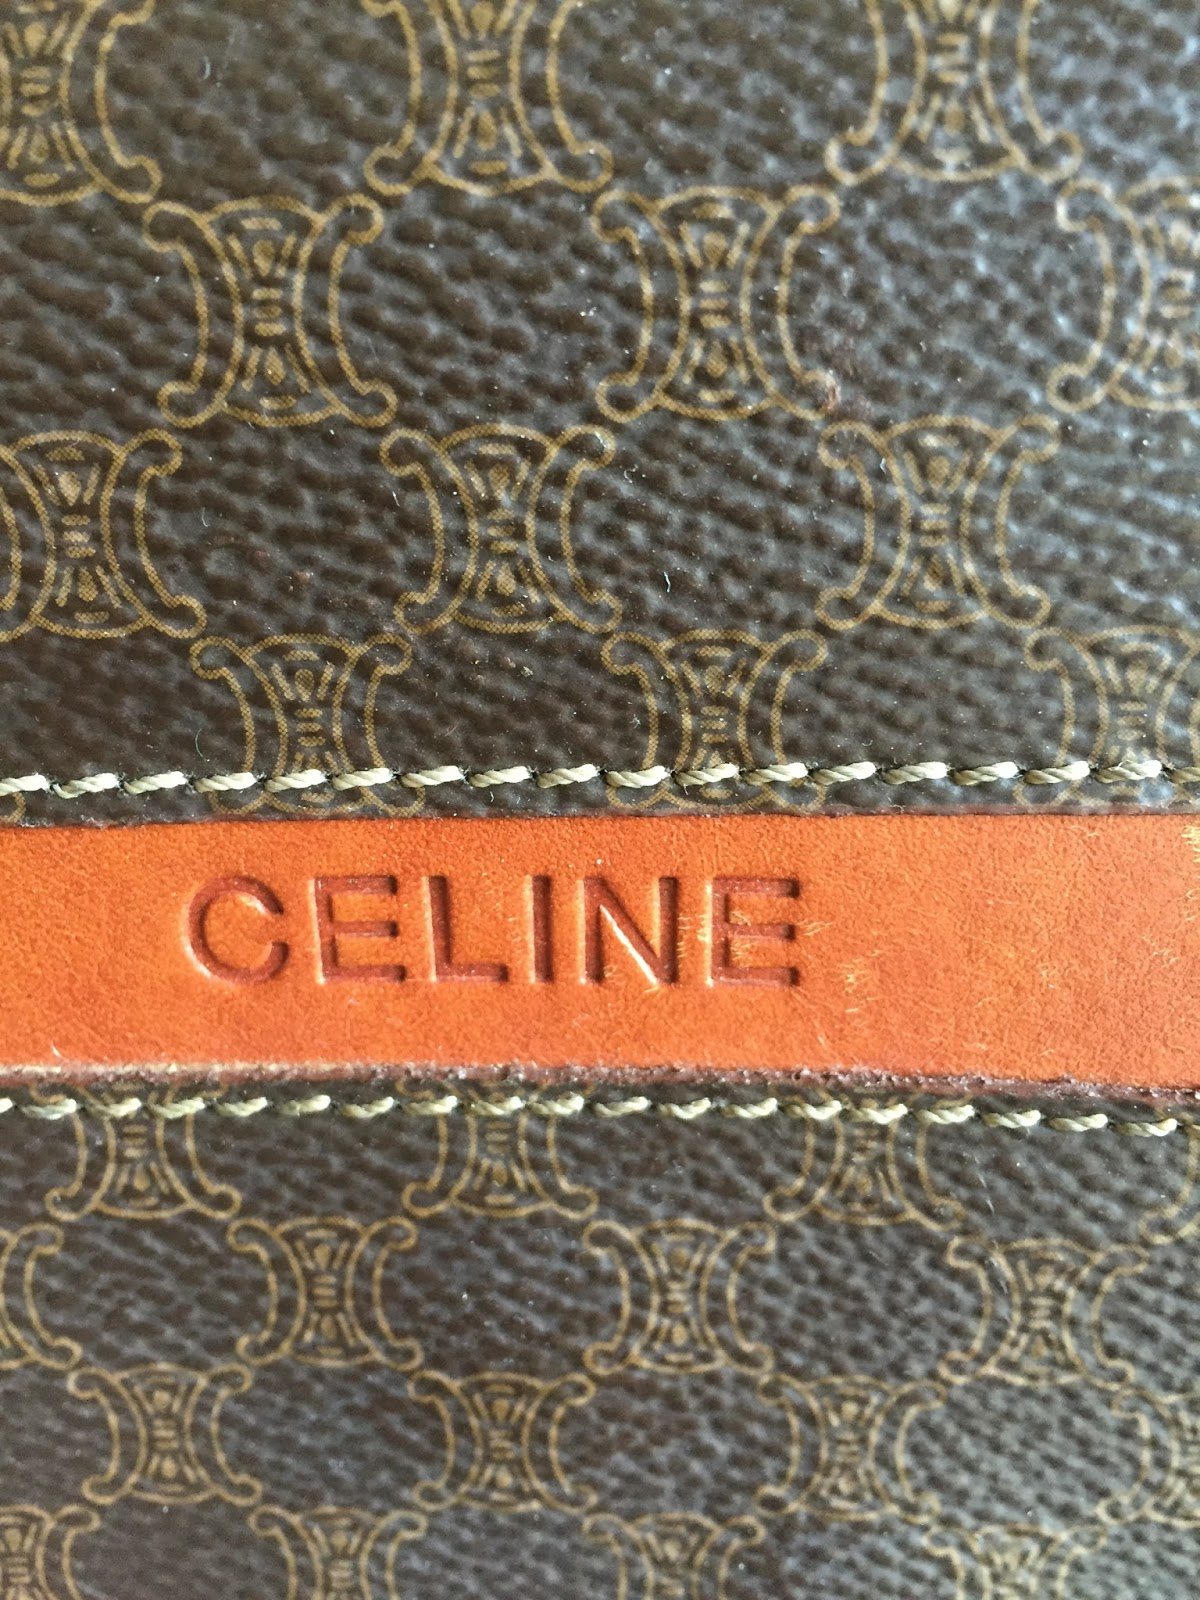 hermes paris purses - celine patent leather crossbody bag